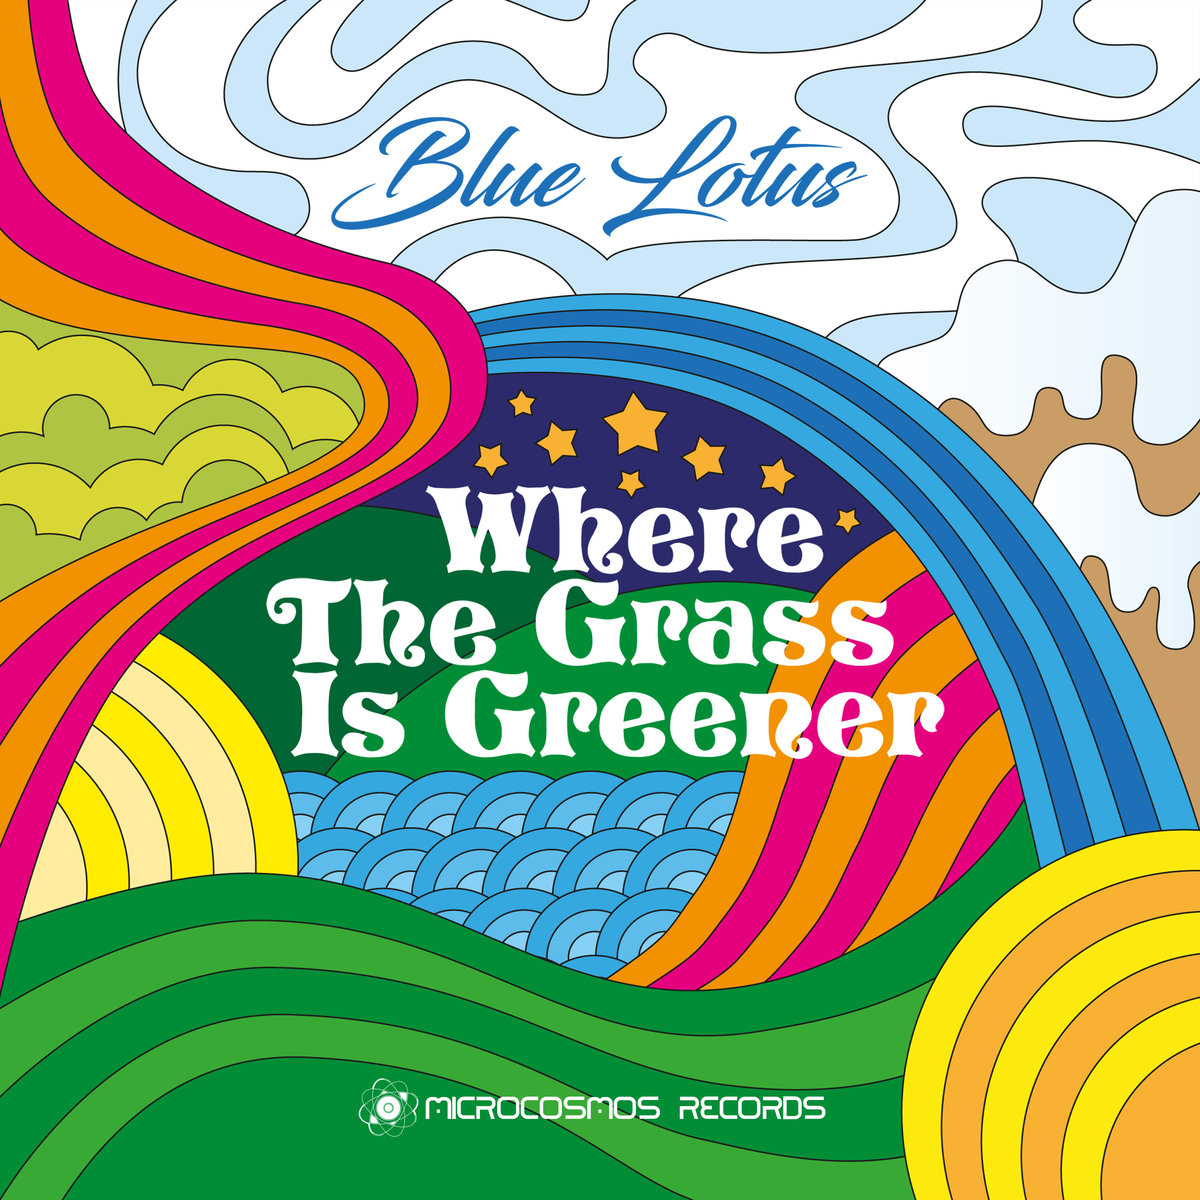 Blue Lotus - Olor Molor @ 'Where The Grass Is Greener' album (ambient, chill-out)